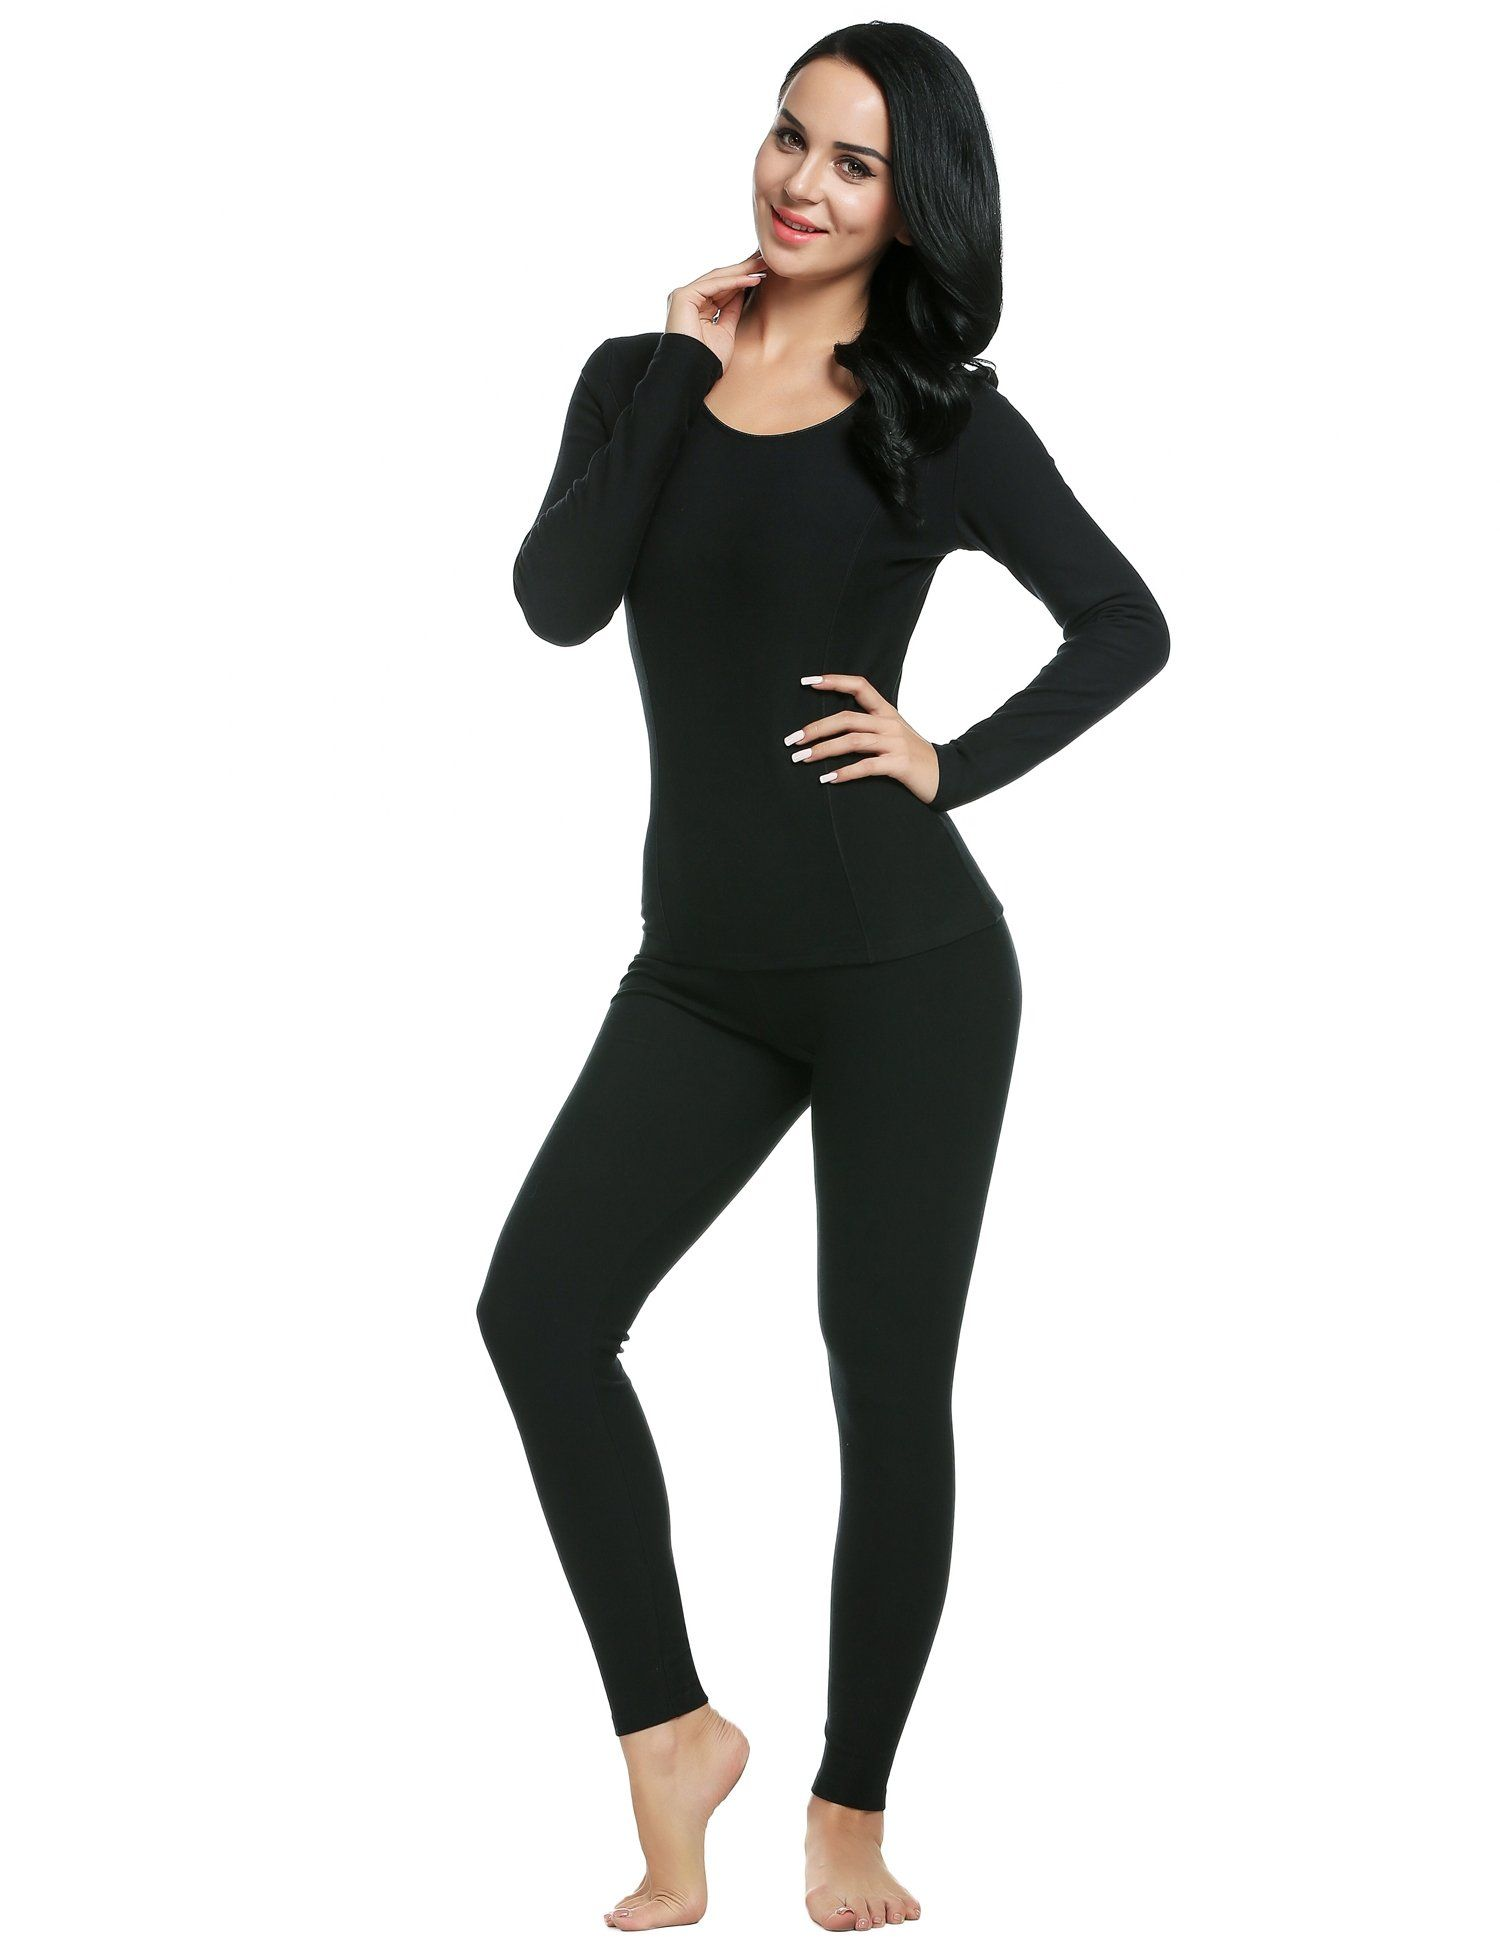 7cb29982dae08c Ekouaer Women's Thermal Wear Winter Long Johns Pajama Set Sleepwear Plus  Size(Black,Large